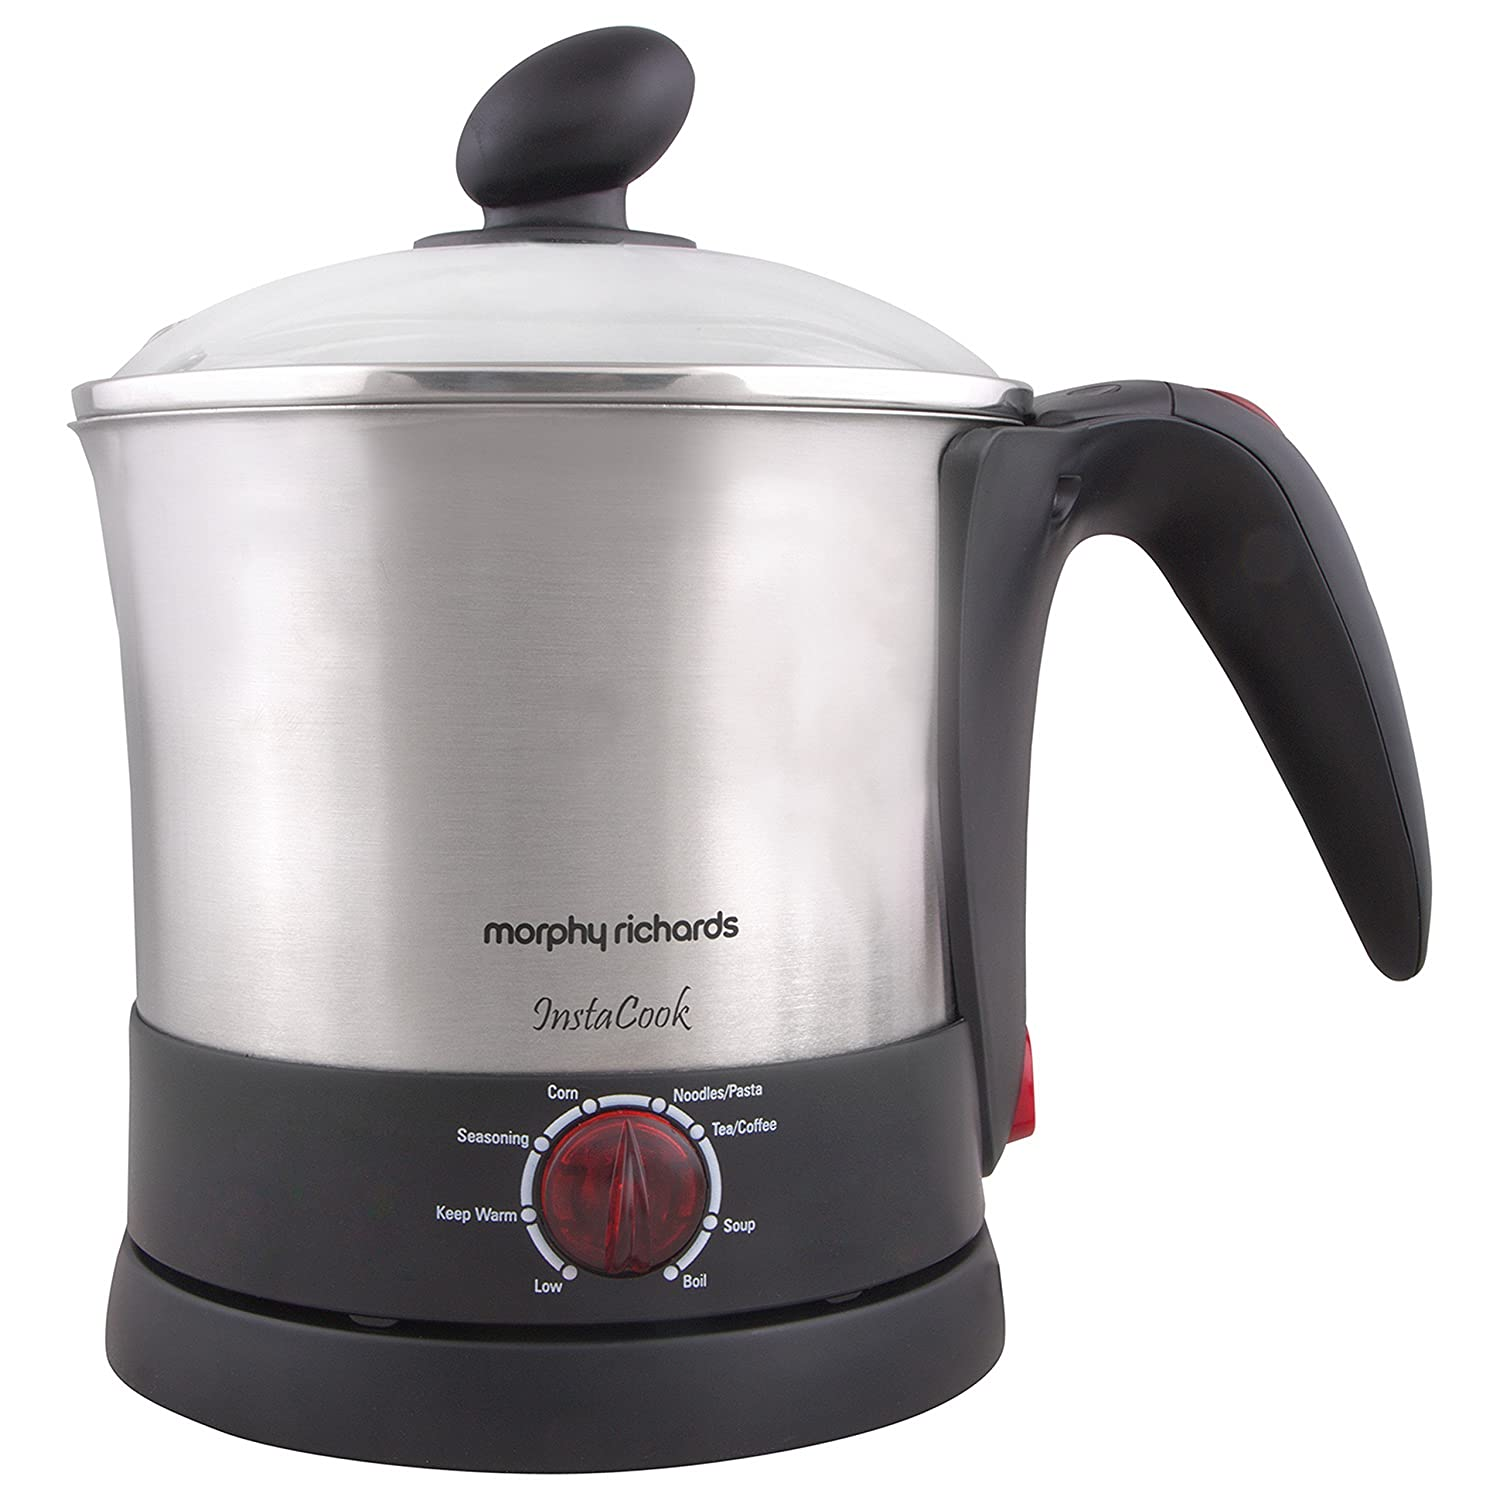 Morphy Richards InstaCook 1200 W